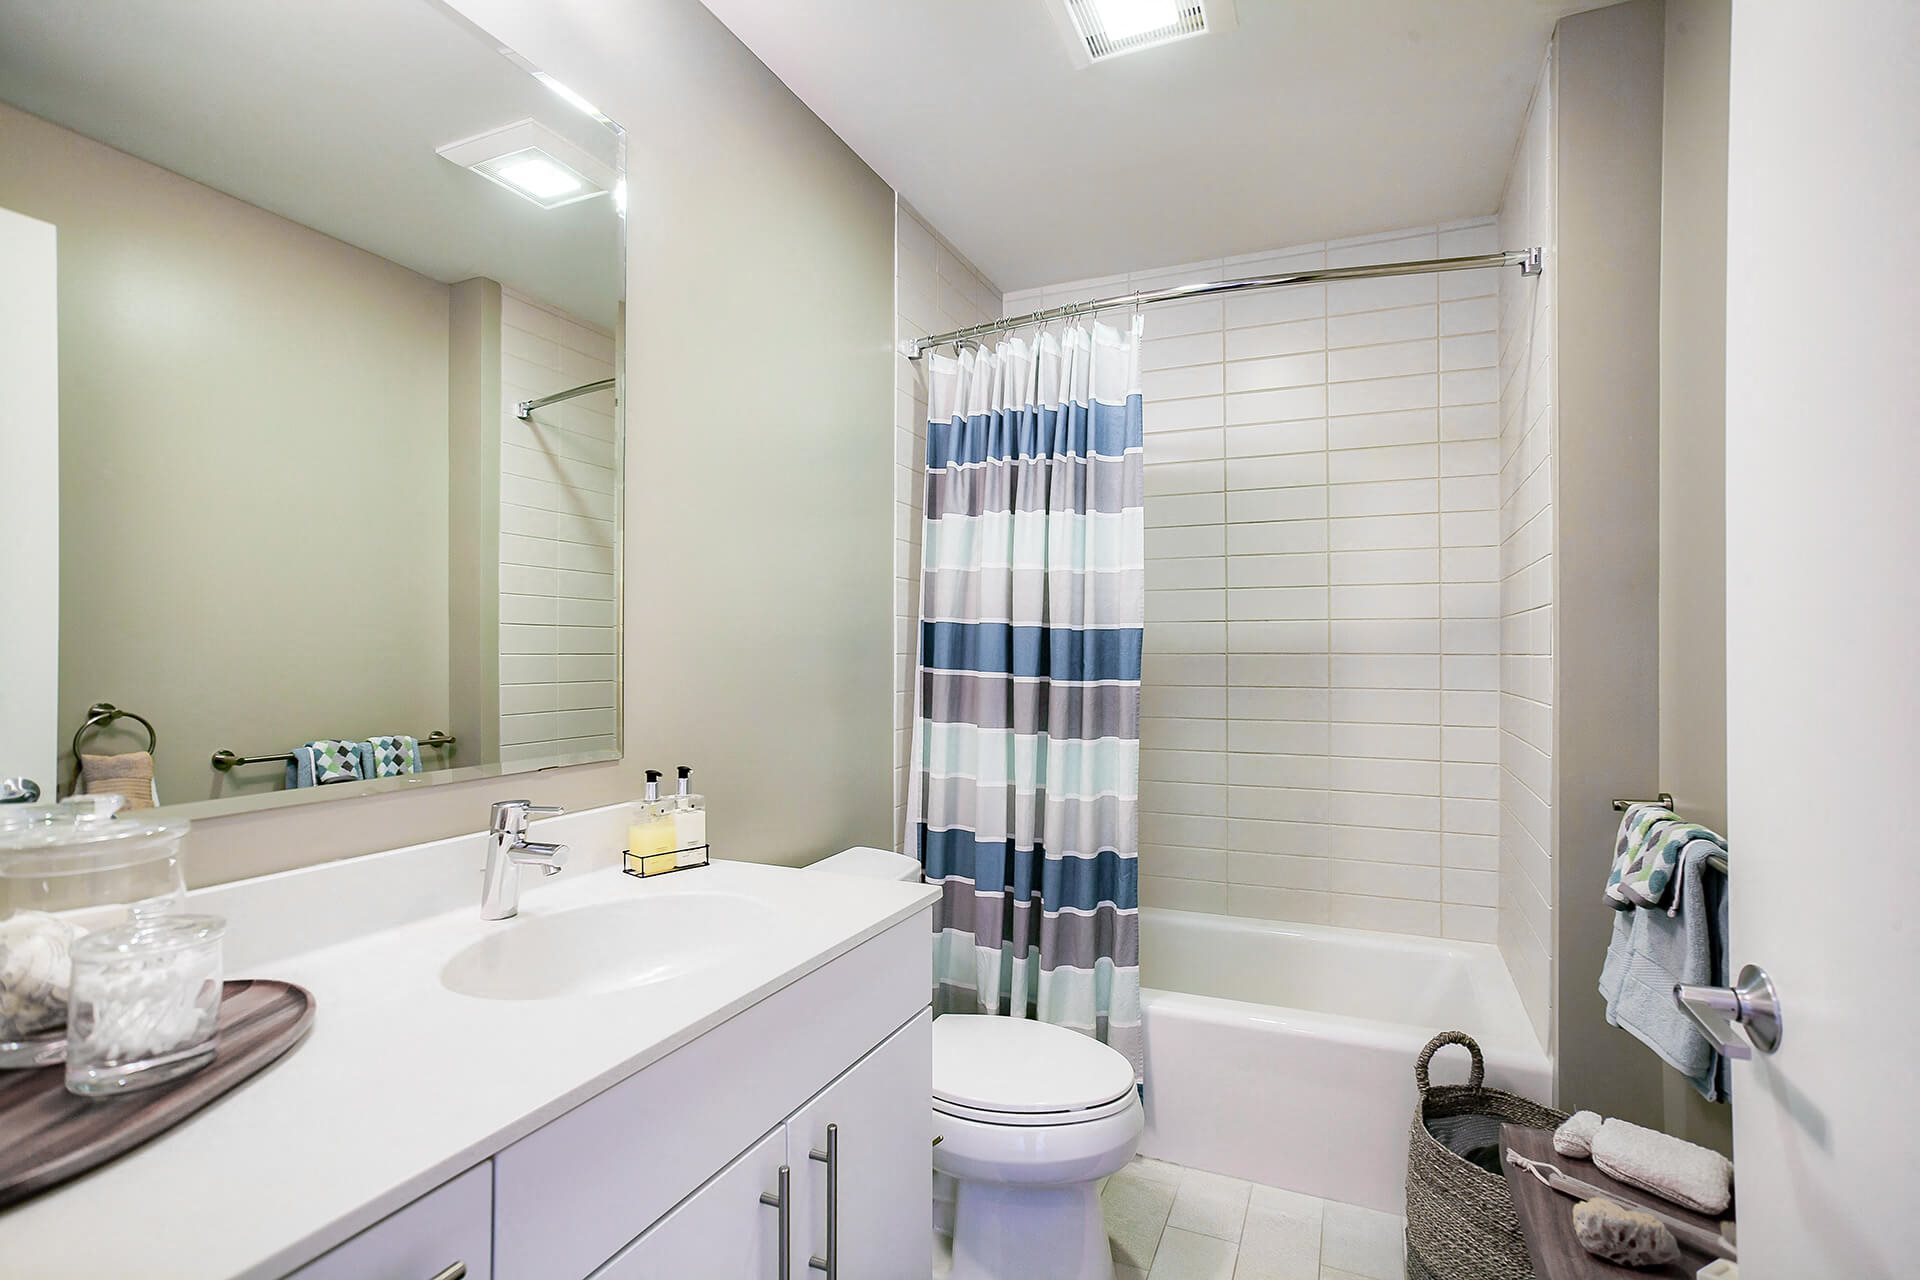 Luxury bathrooms at Waterside Place by Windsor, Boston, MA